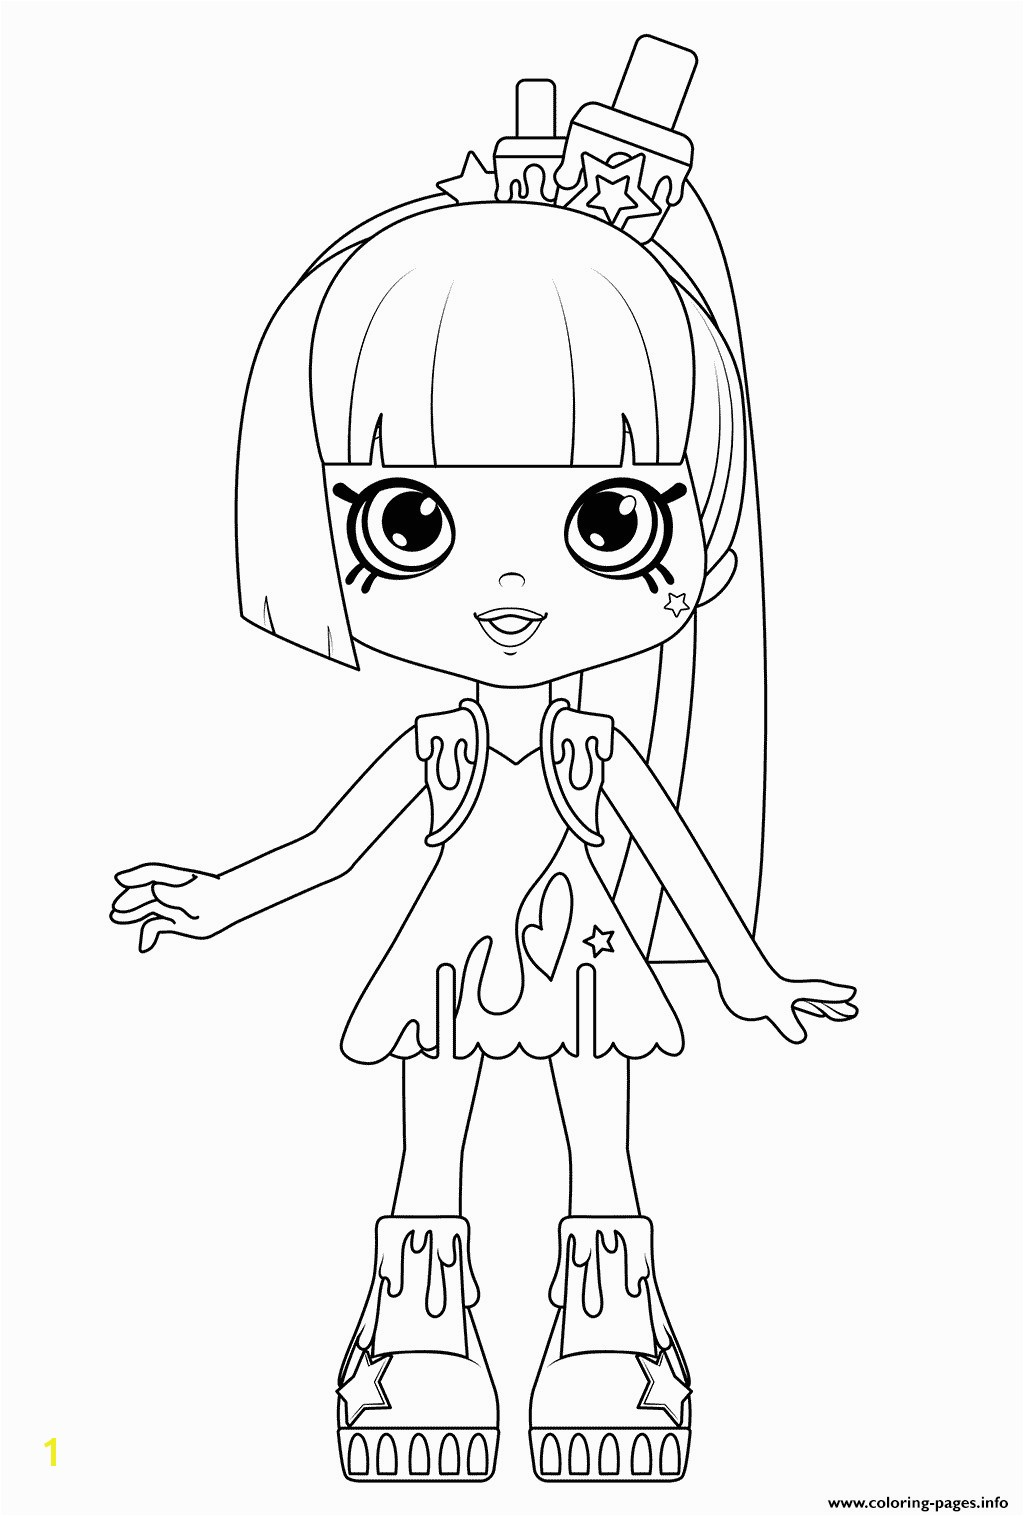 Sofia Carson Coloring Pages Inspirational Shopkins Happy Places Coloring Pages 12 Best sofia Carson